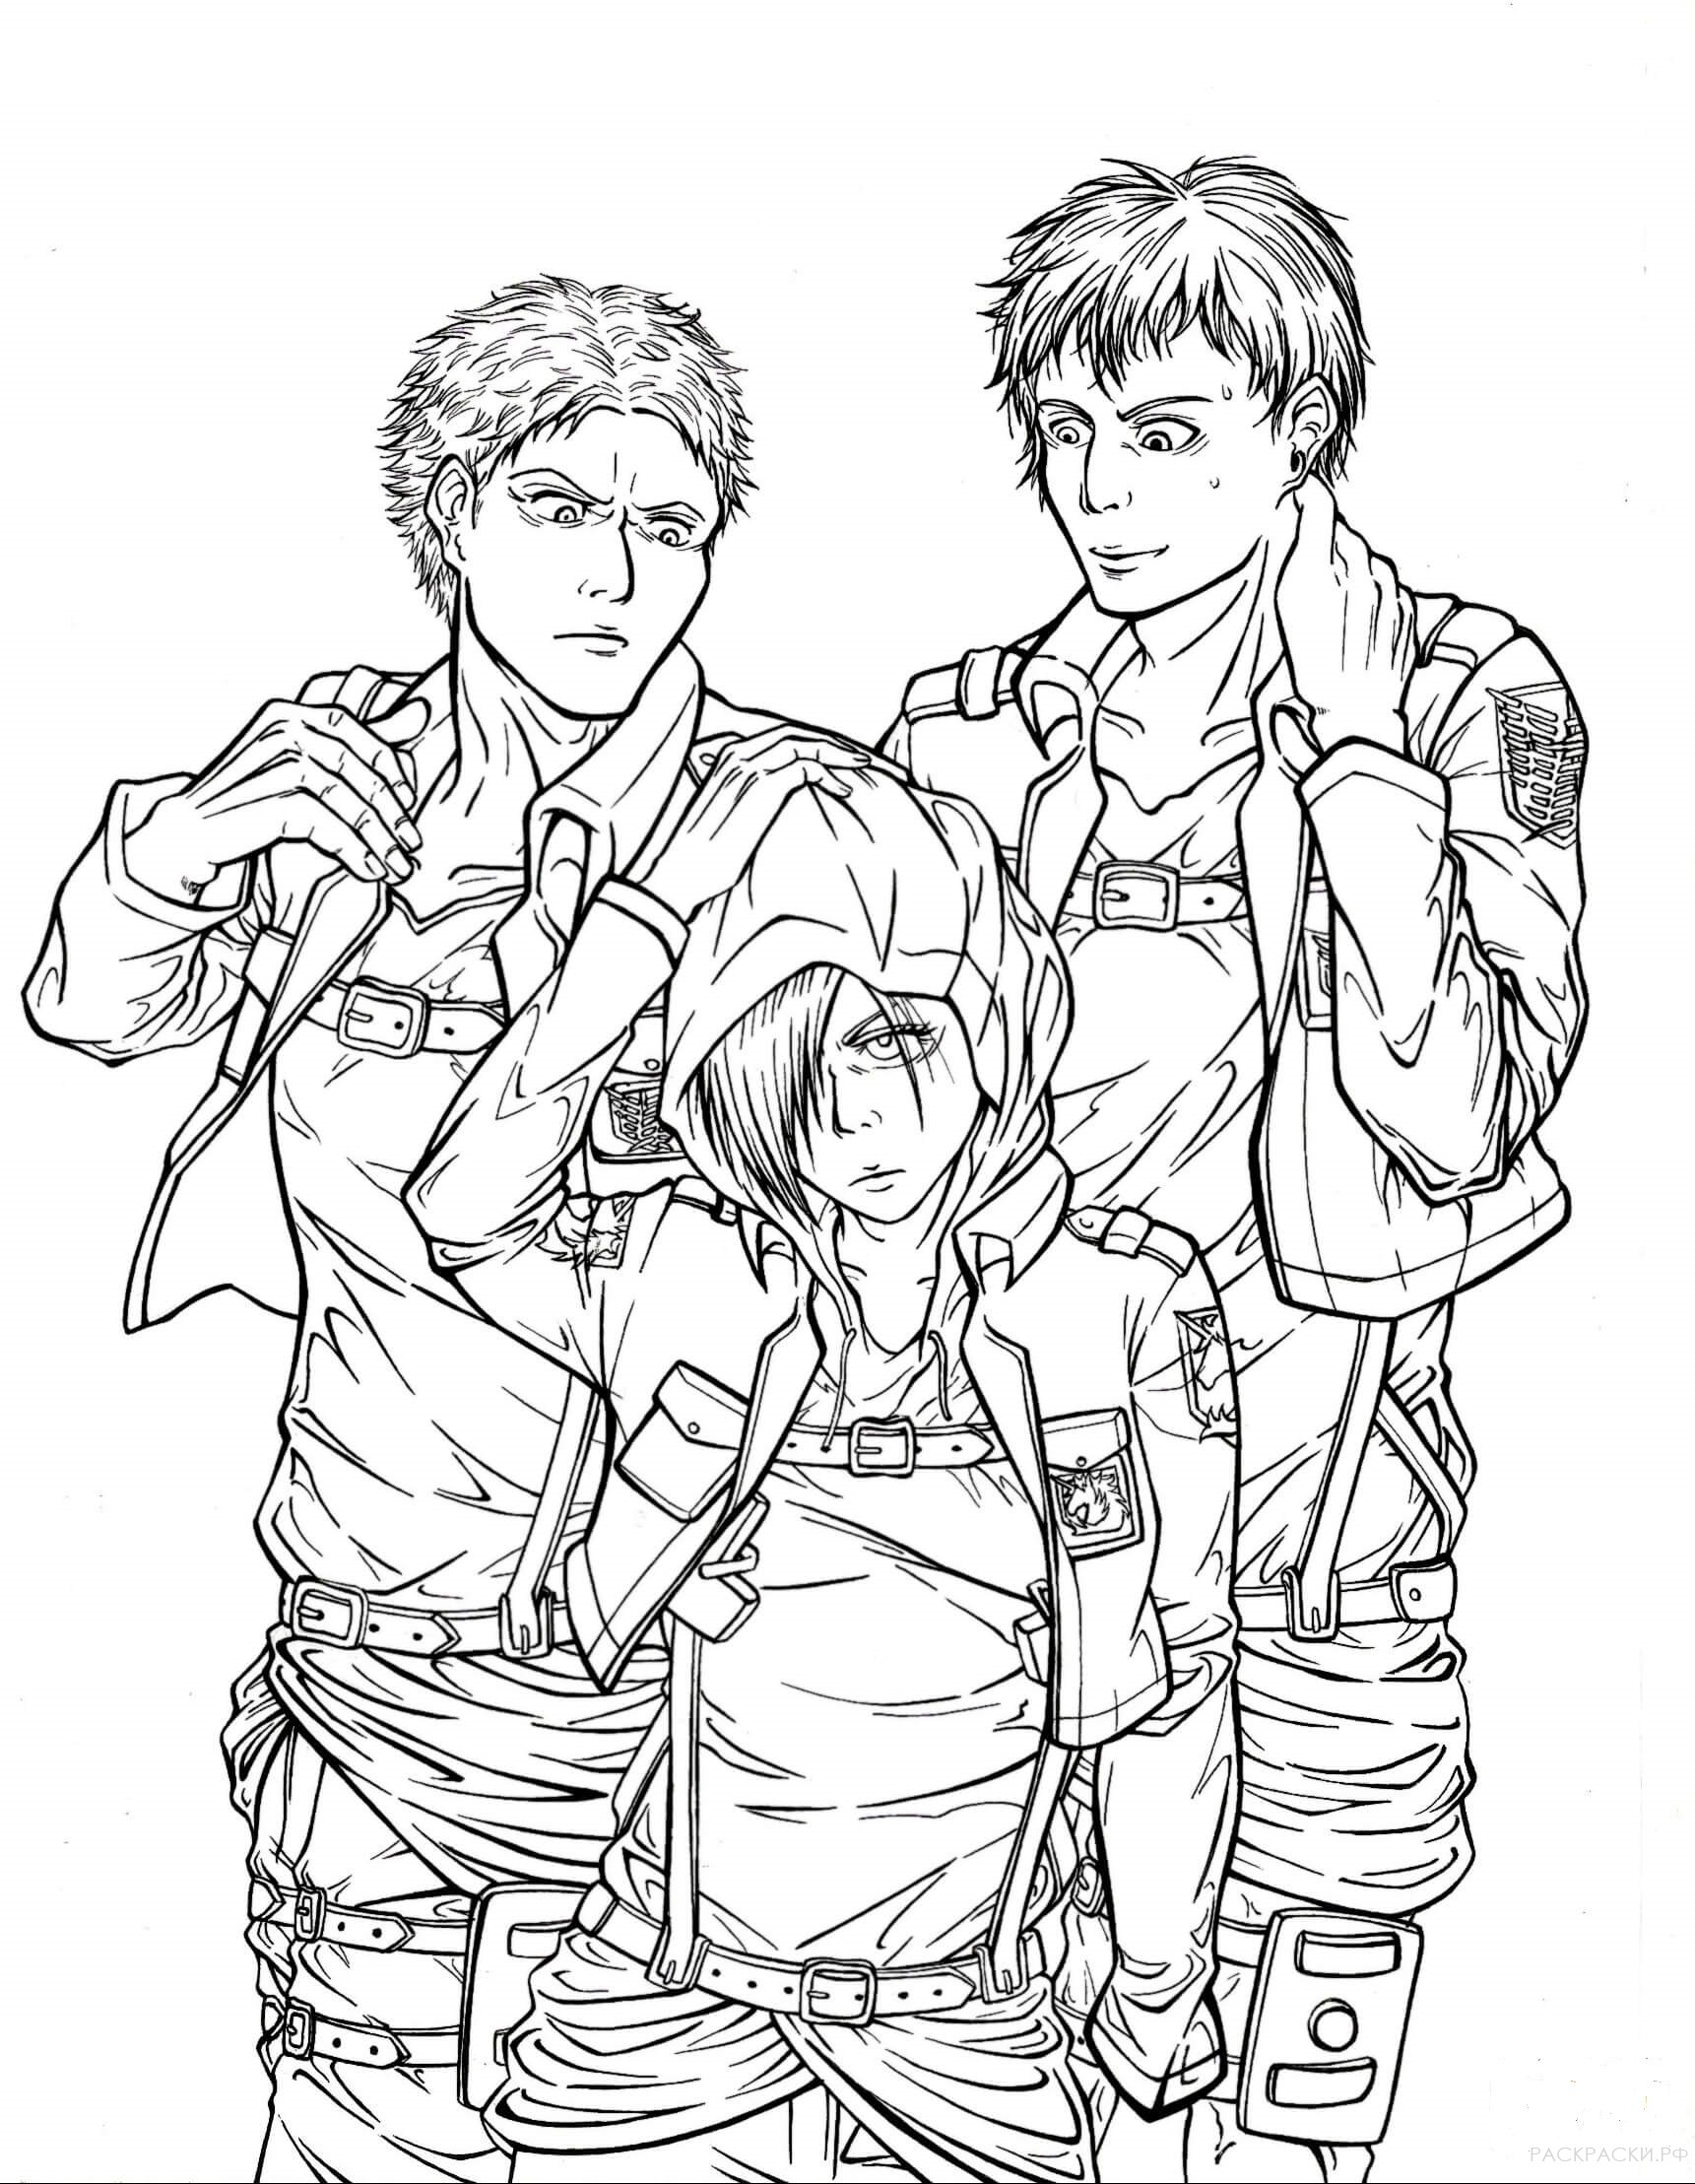 attack on titan coloring attack on titan coloring pages coloring pages to coloring titan attack on